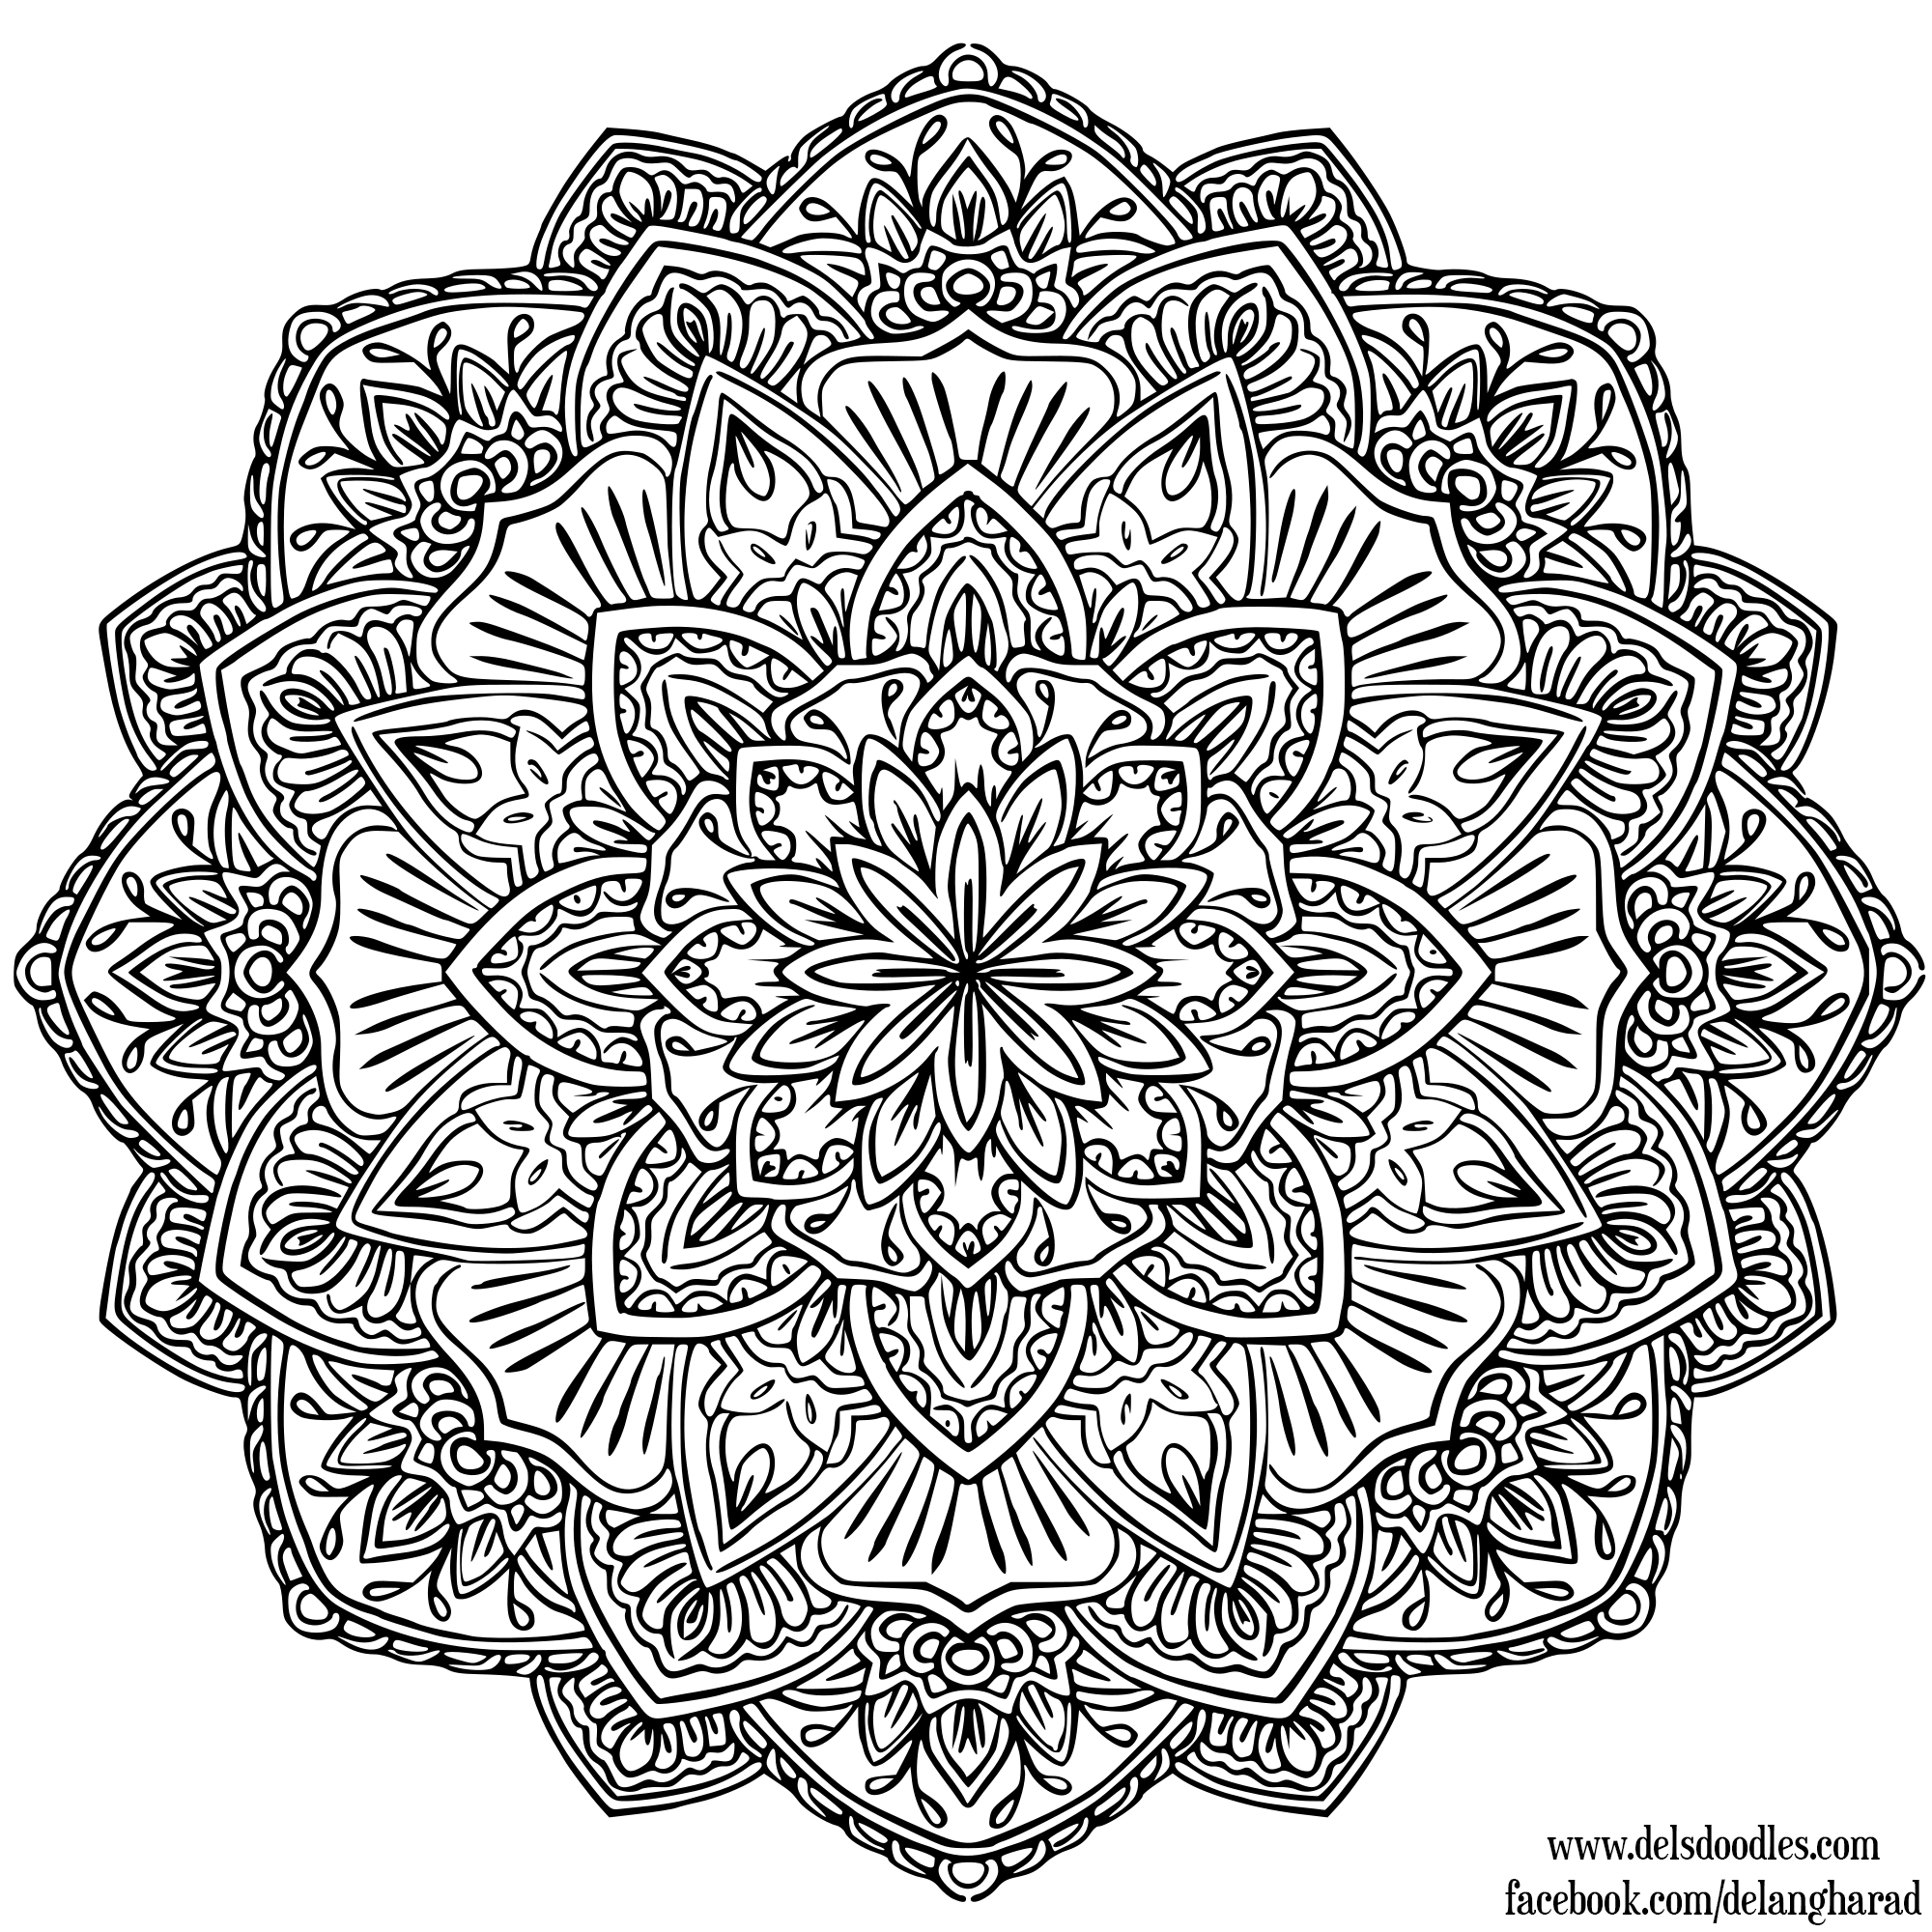 mandala free printable flower mandala coloring pages best coloring pages for kids mandala printable free